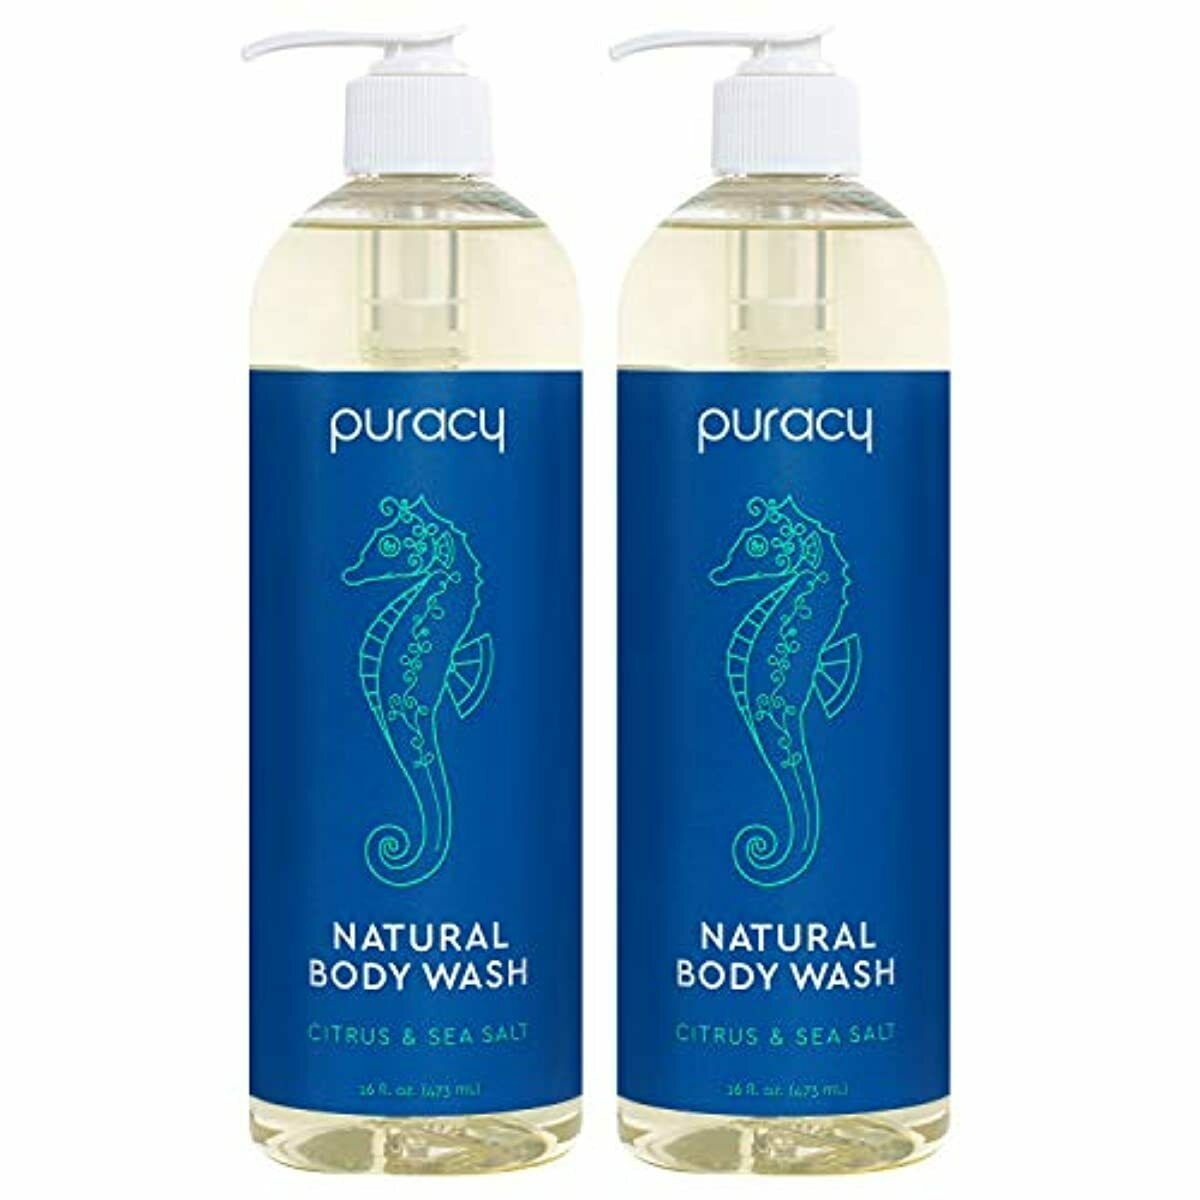 Puracy Natural Body Wash, Sulfate-Free Bath and Shower Gel,